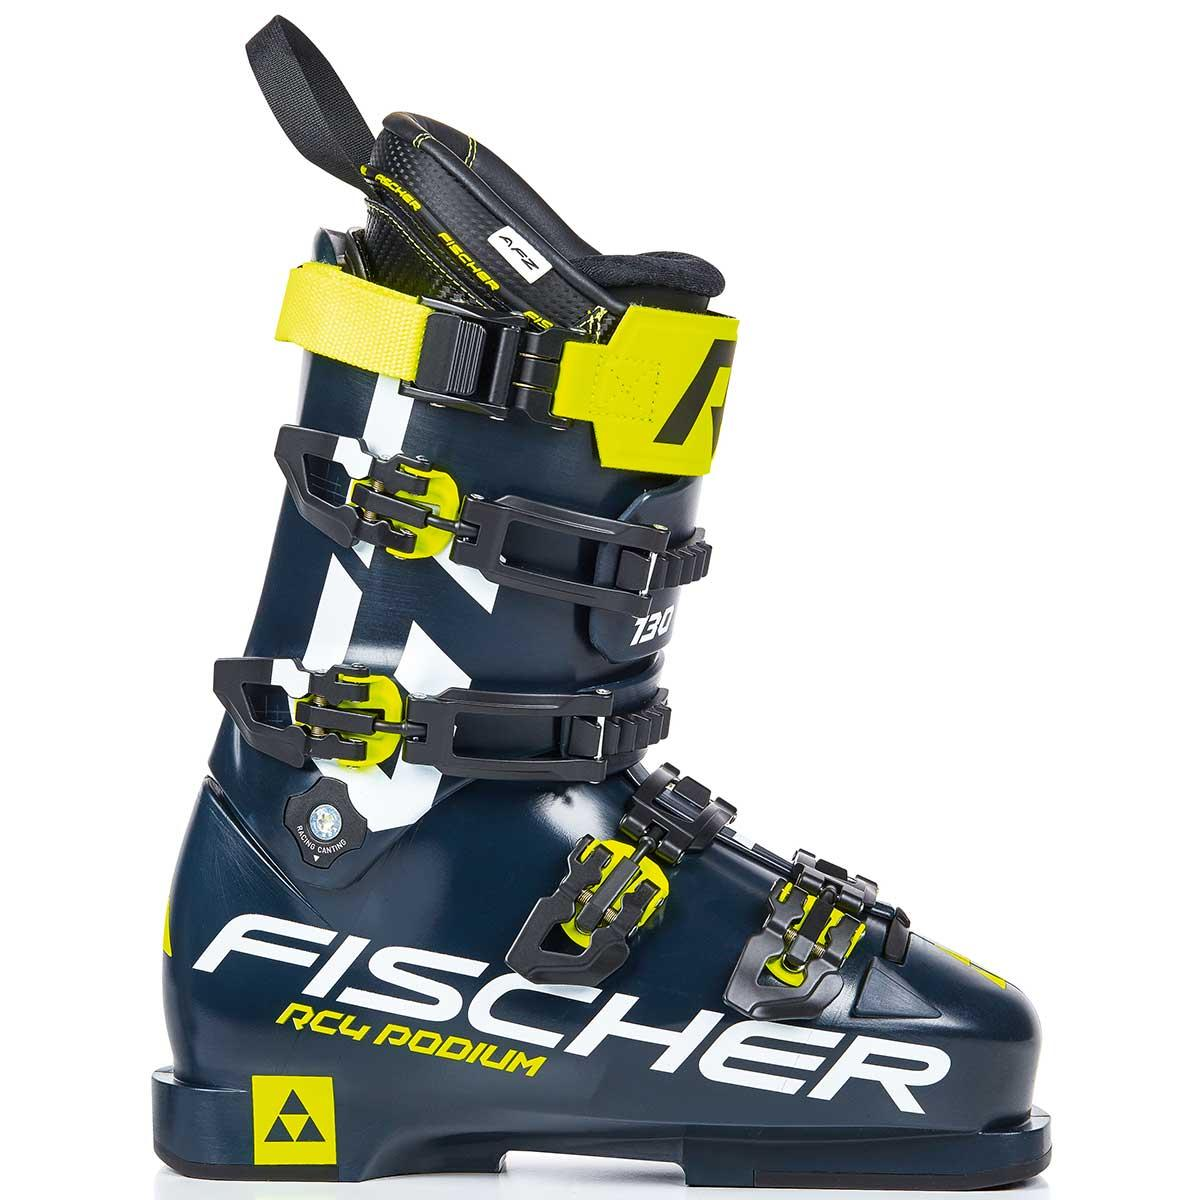 Fischer Men's RC4 Podium GT 130 ski boot in black and green